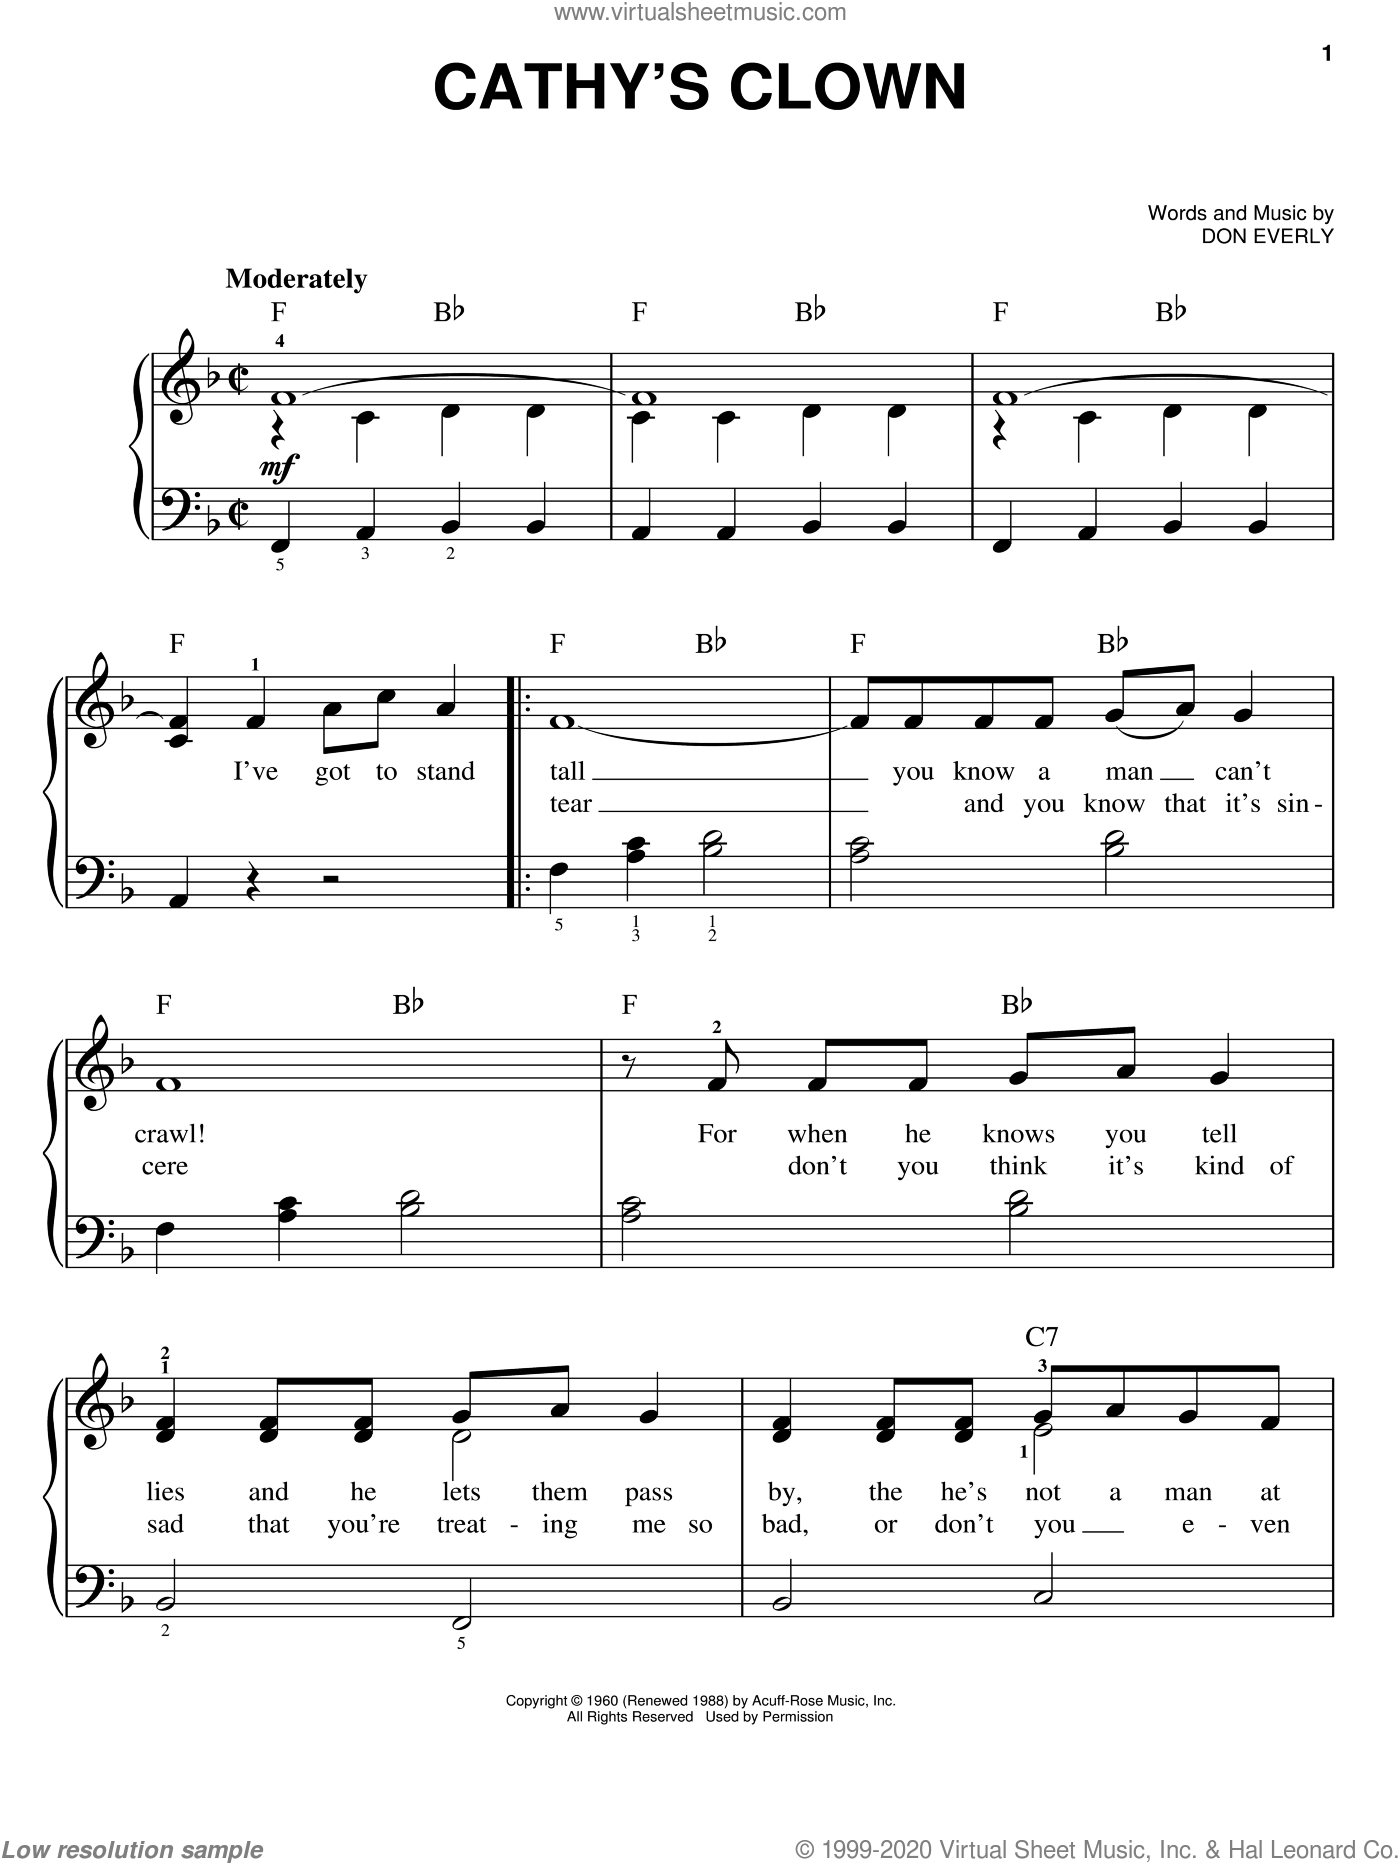 Cathy's Clown sheet music for piano solo by Don Everly, Everly Brothers and Reba McEntire